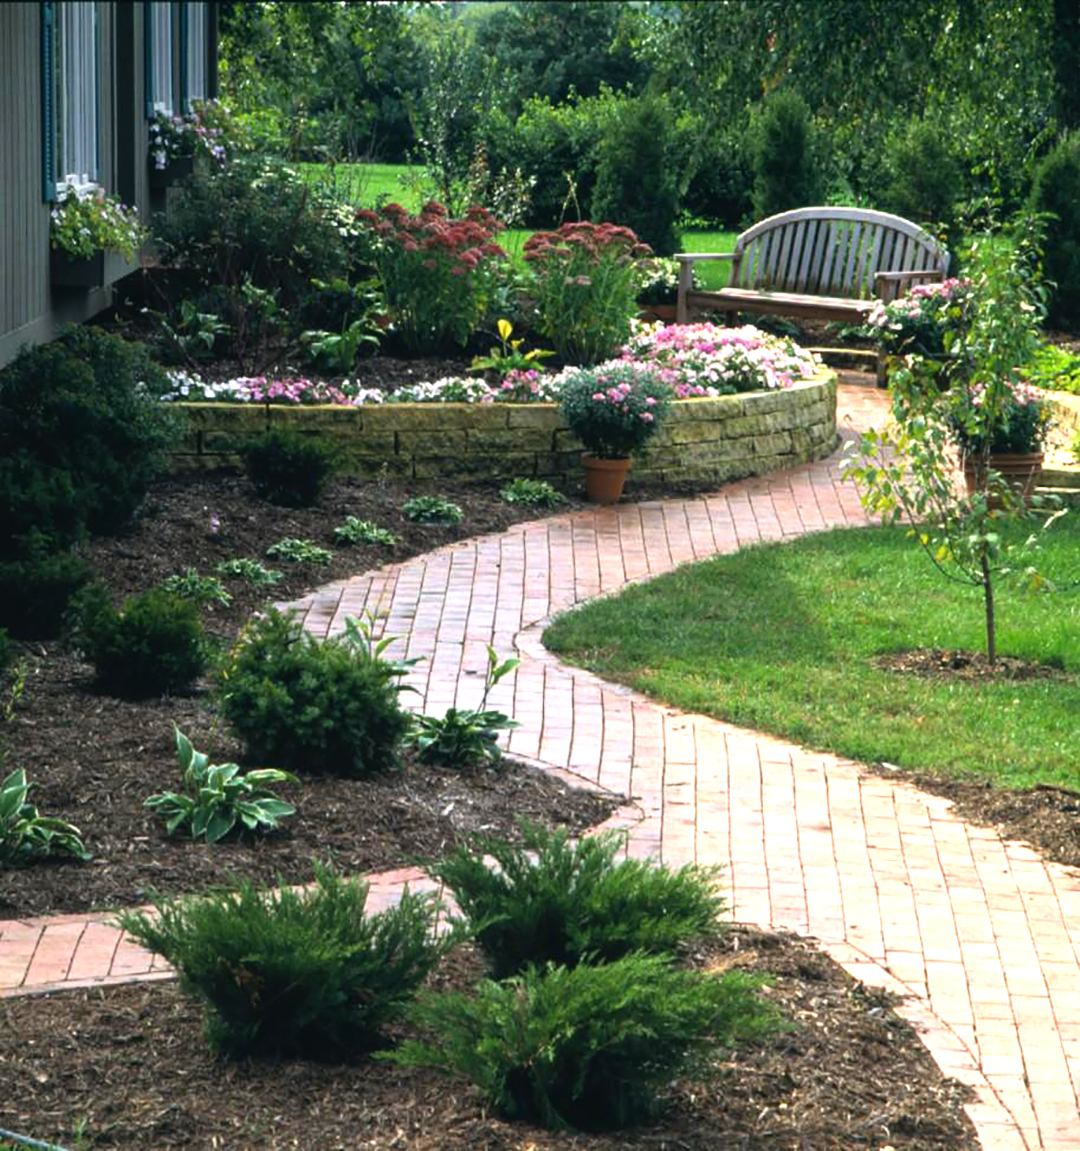 Three Year Step Step Landscape Plan Better Homes Gardens pertaining to Plan Backyard Landscaping